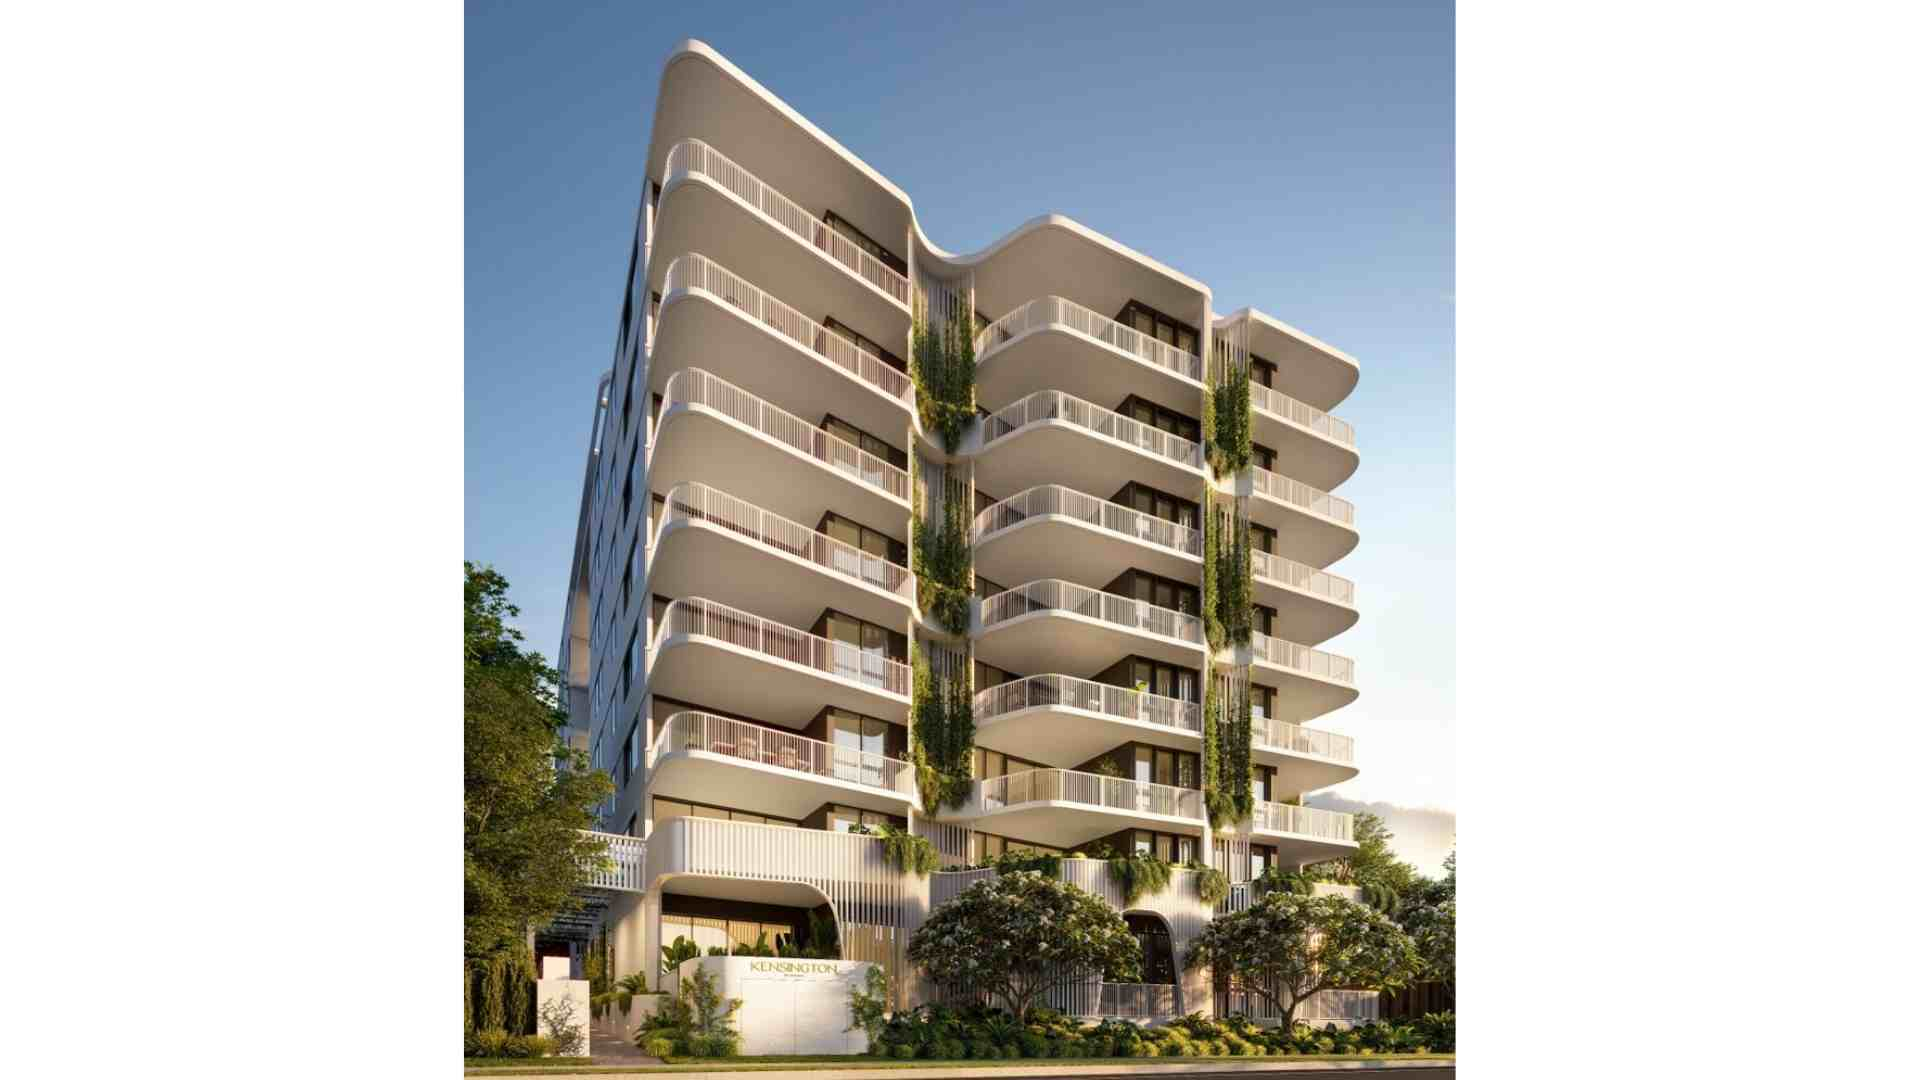 Kensington QLD residential apartment, white building with plant on the side